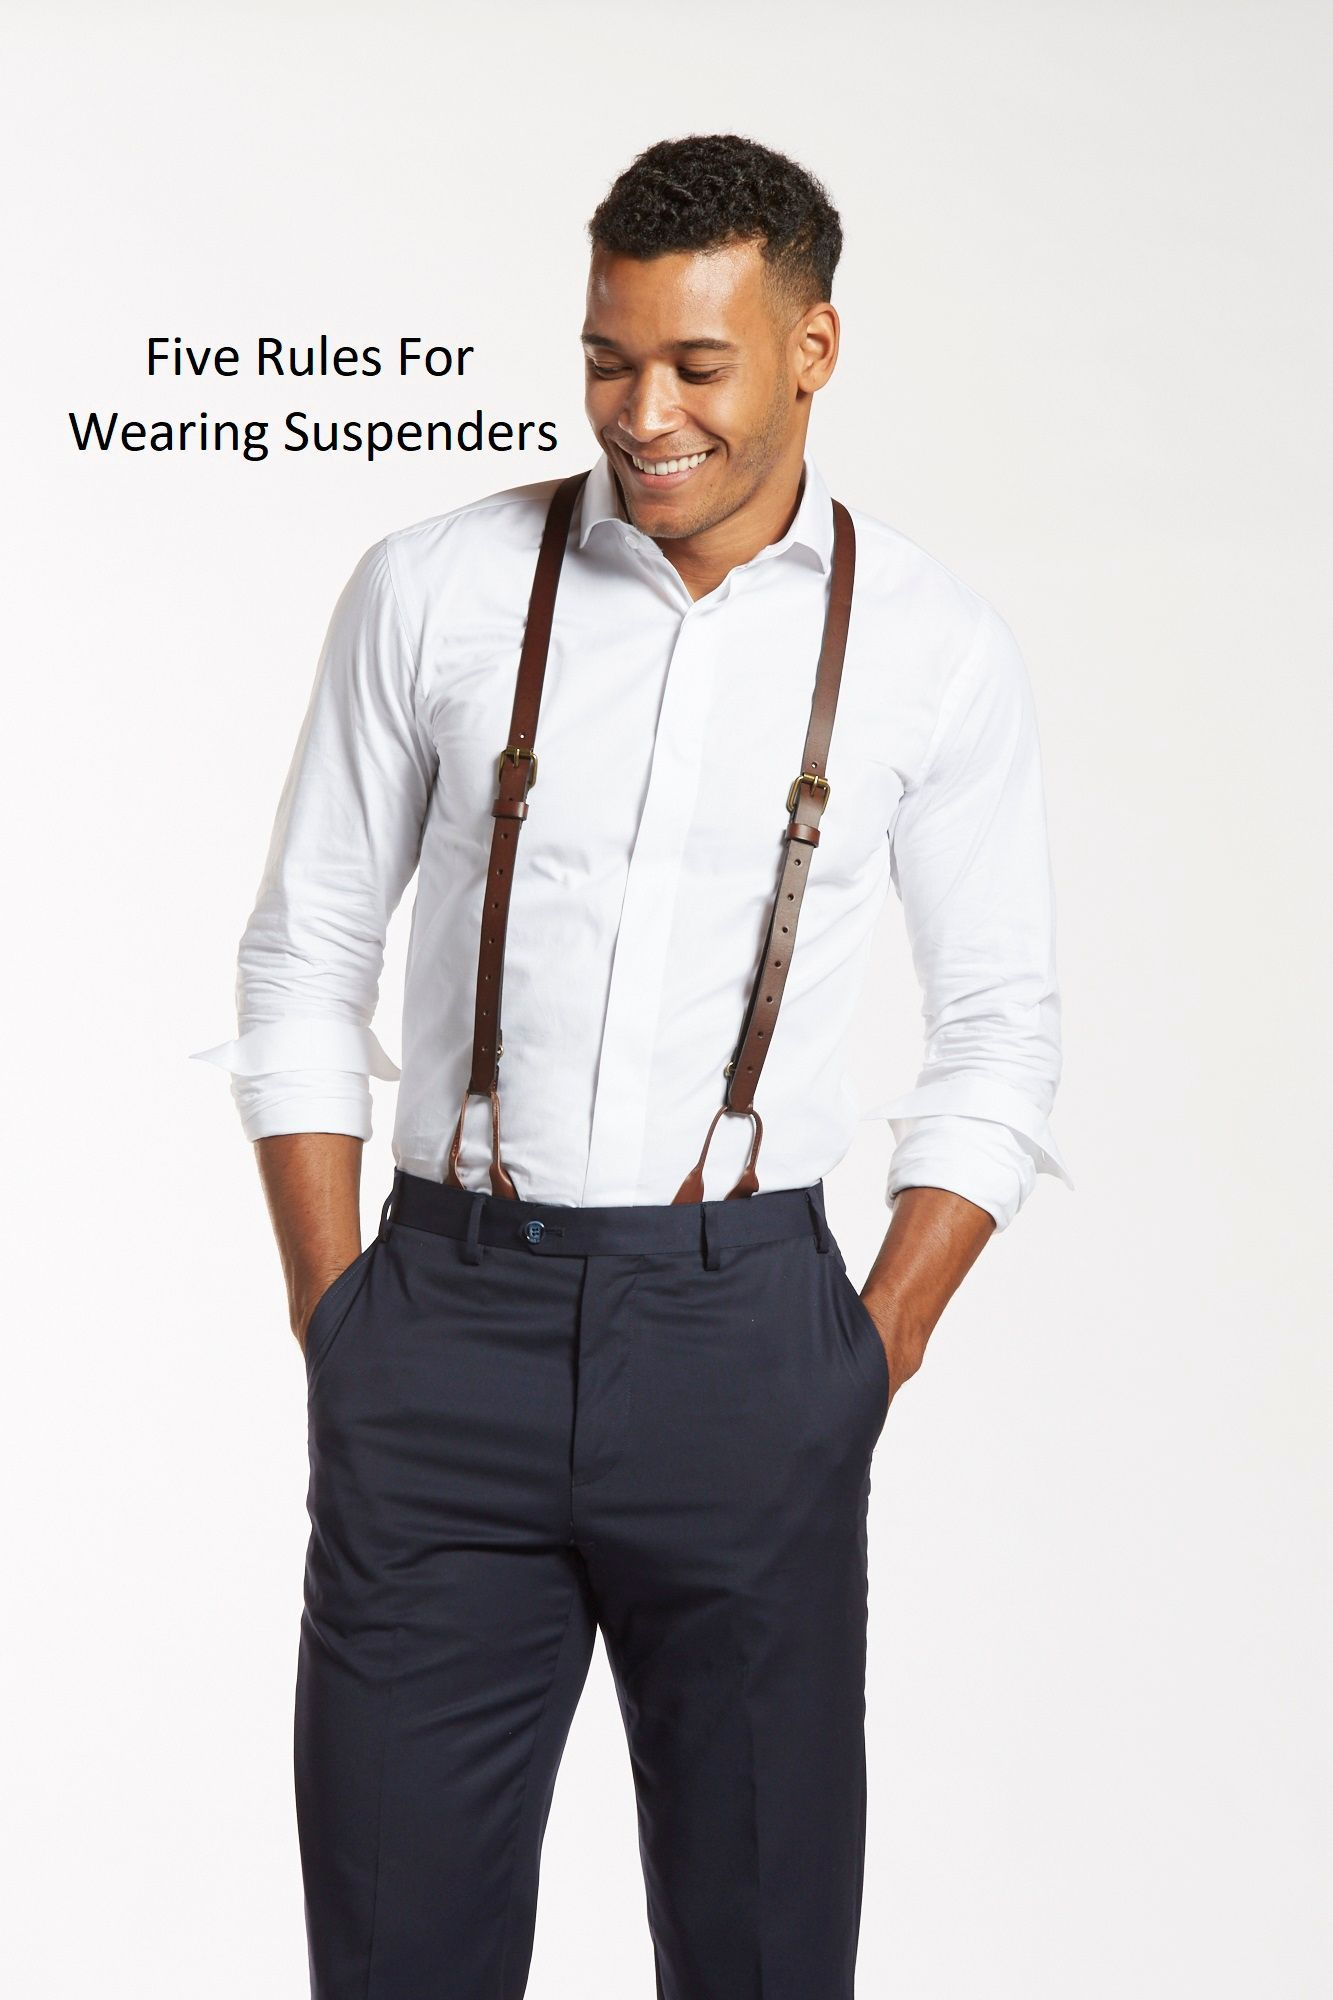 e3bb9d1c52863e 5 Rules For Wearing Suspenders 1. NEVER wear suspenders with a belt. 2. Vest  or suspenders